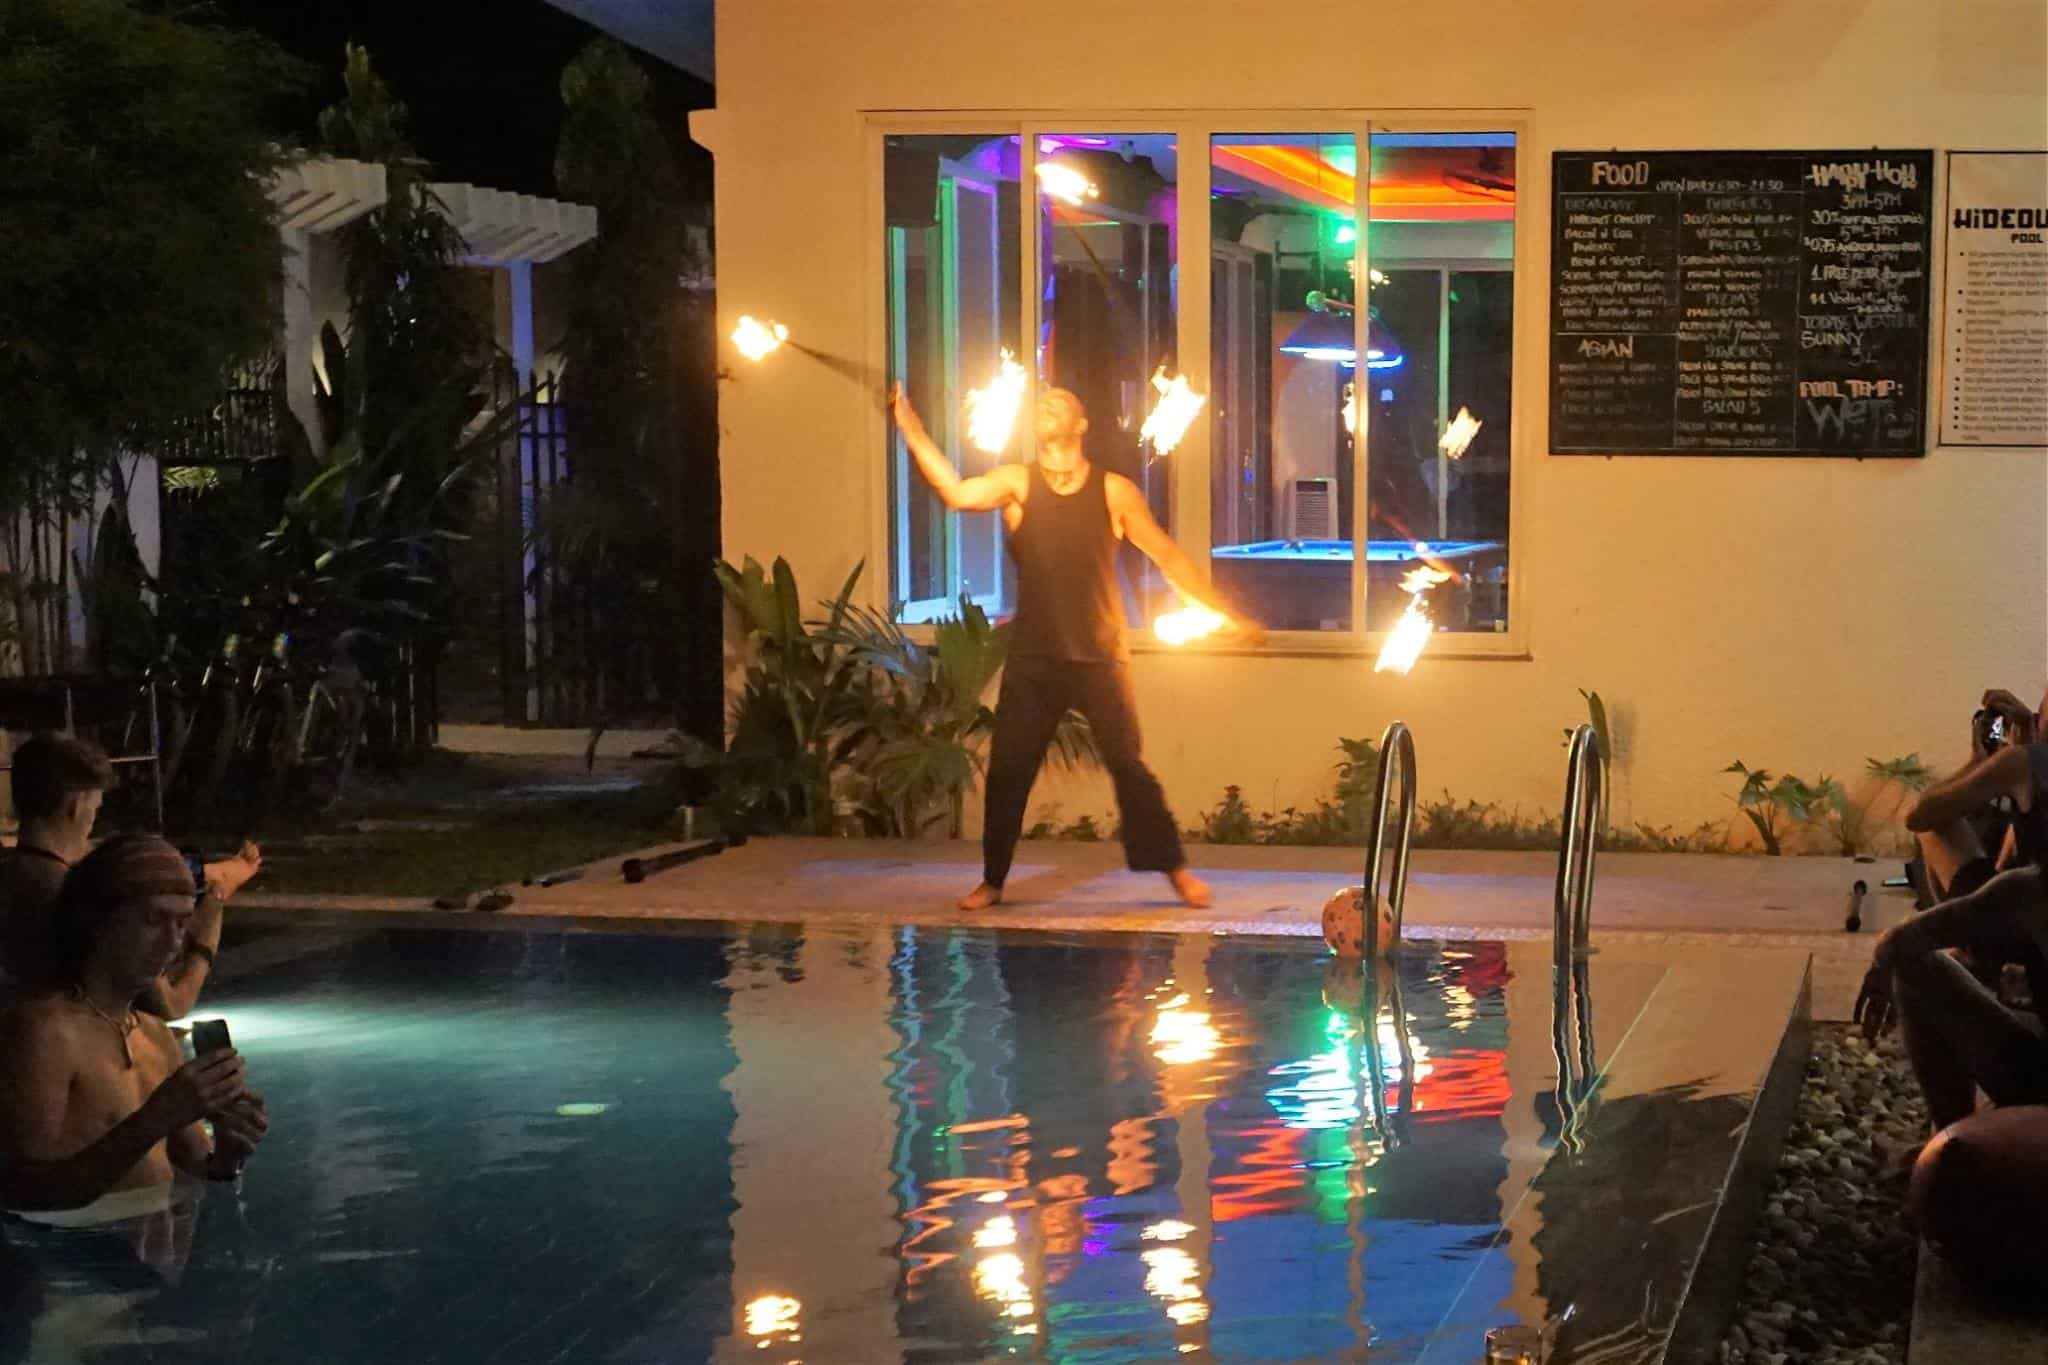 Fire show at The Hideout Hostel, Siem Reap, Cambodia.